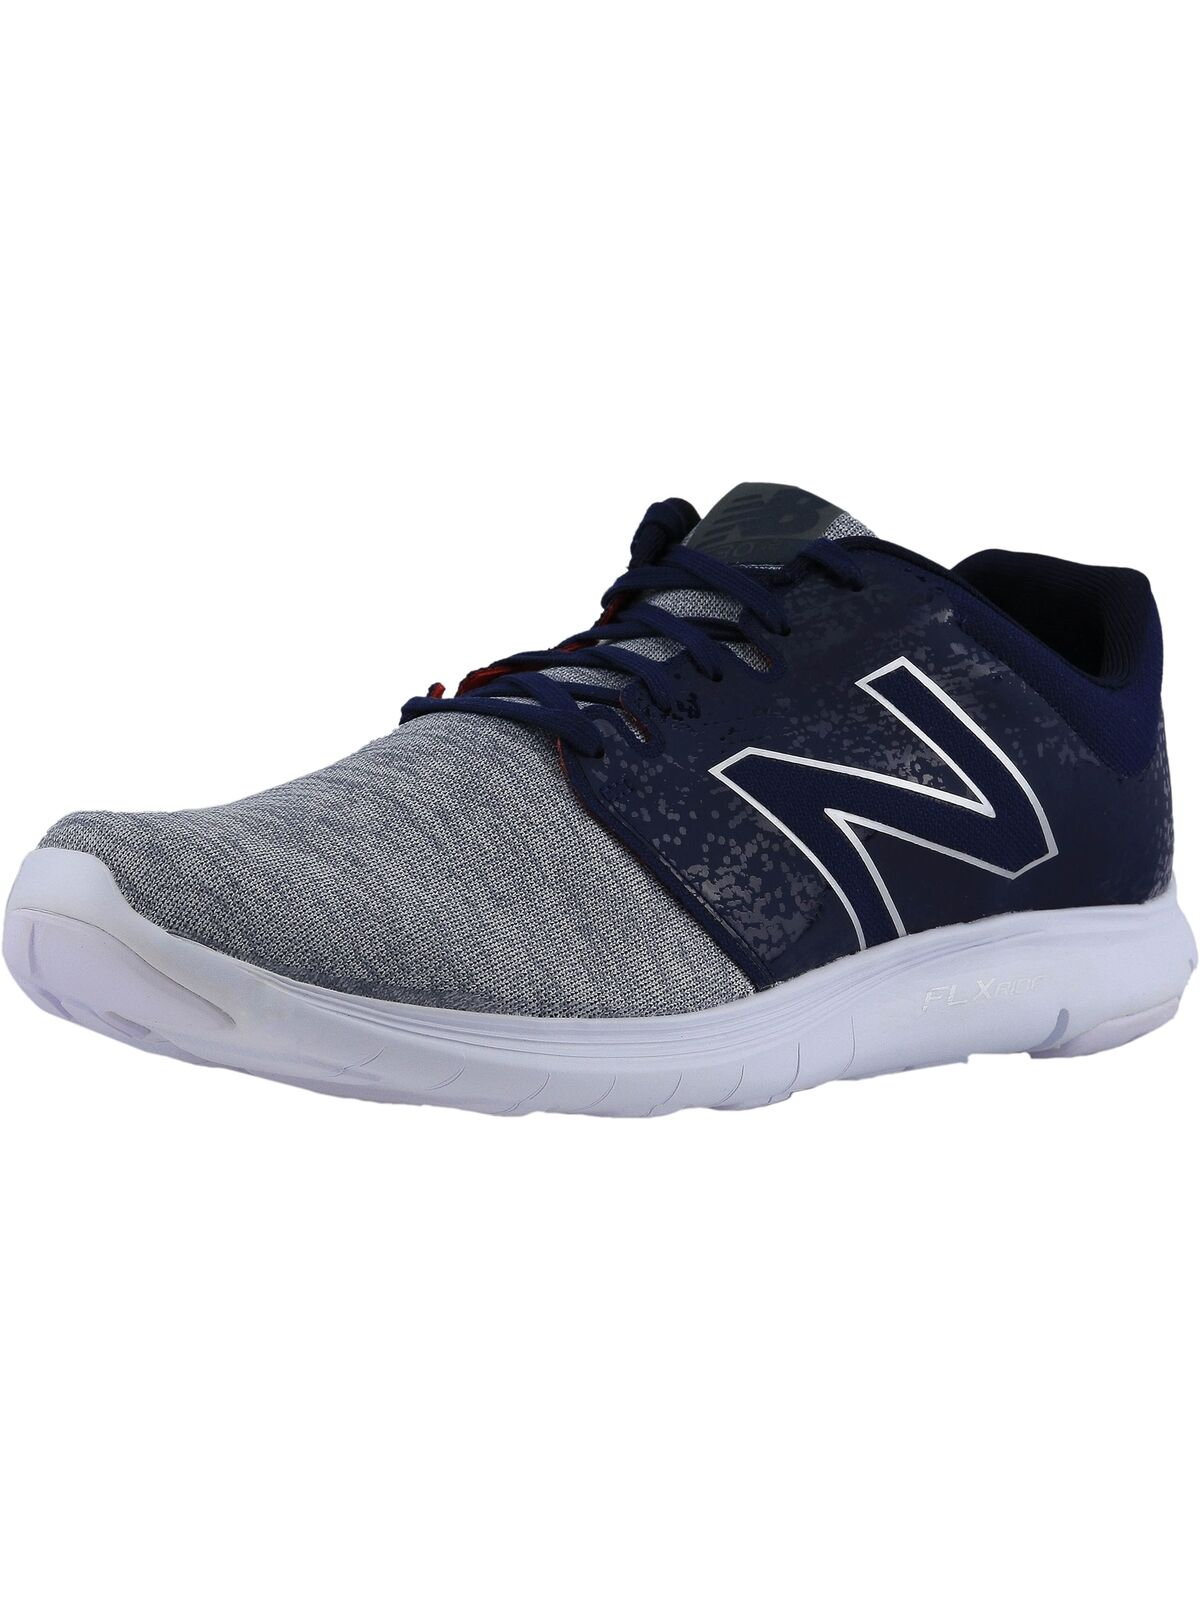 New Balance Men's M530 Ankle-High Fabric Running shoes